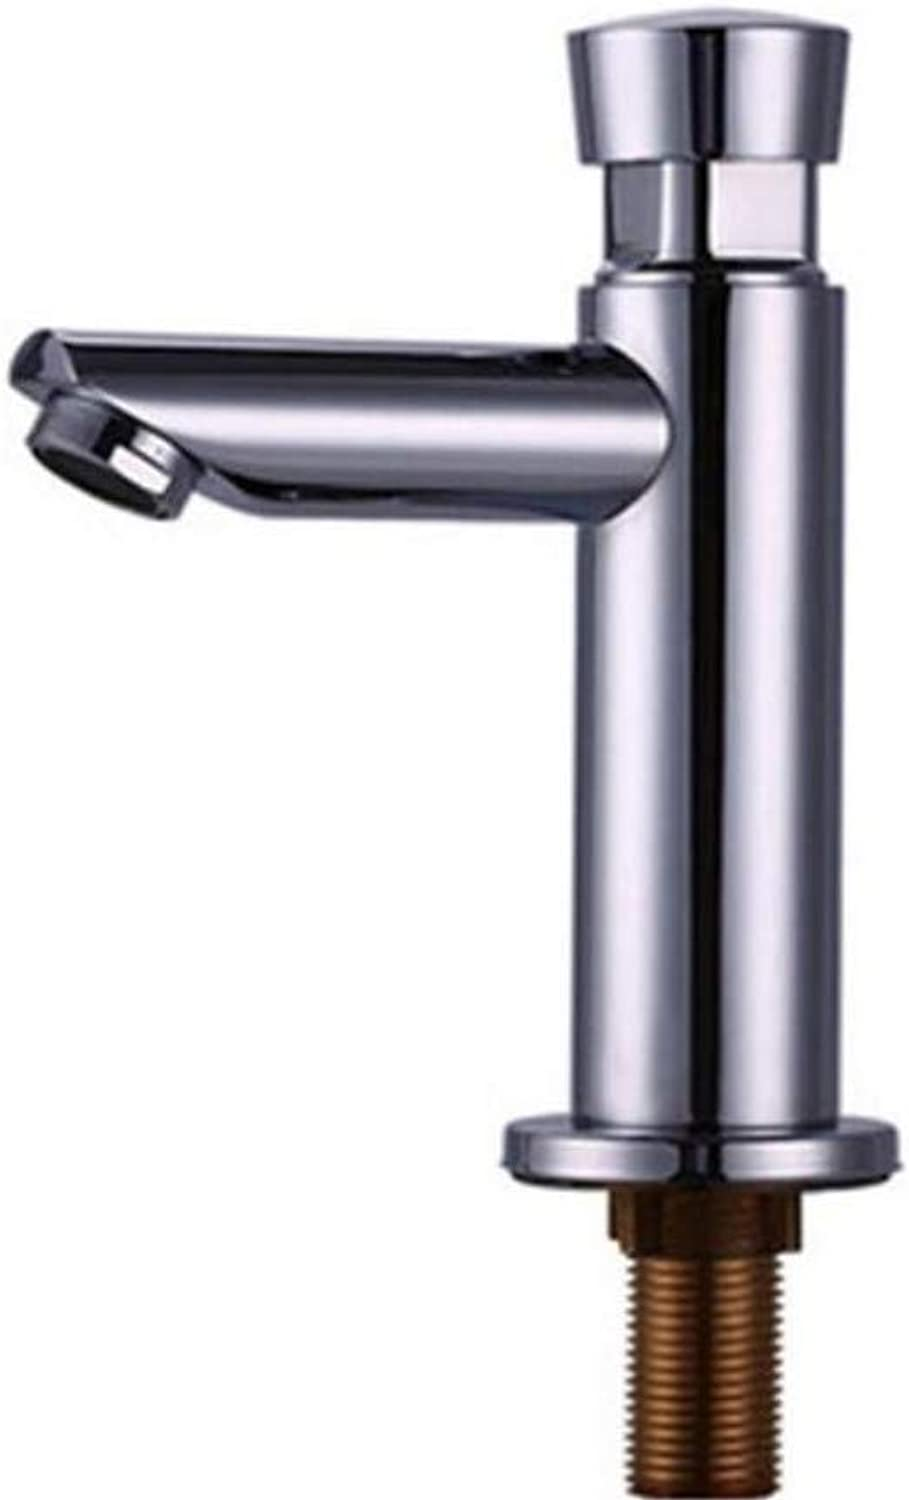 Taps Kitchen Sinksink Faucet Self-Closing Basin Filling Faucet Copper Single Cold Delay Basin Single-Connected Spiral Faucet